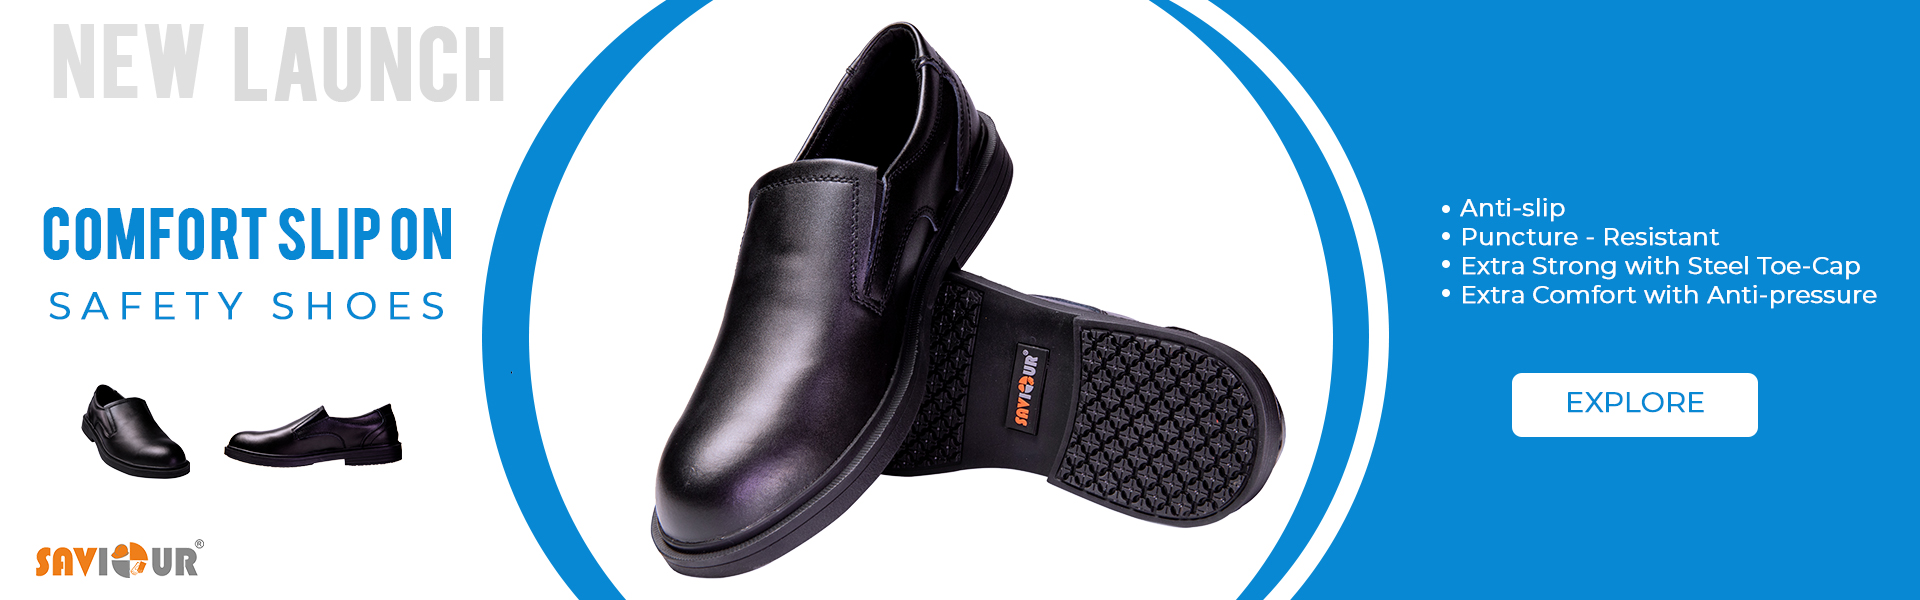 Comfort slip on safety shoes